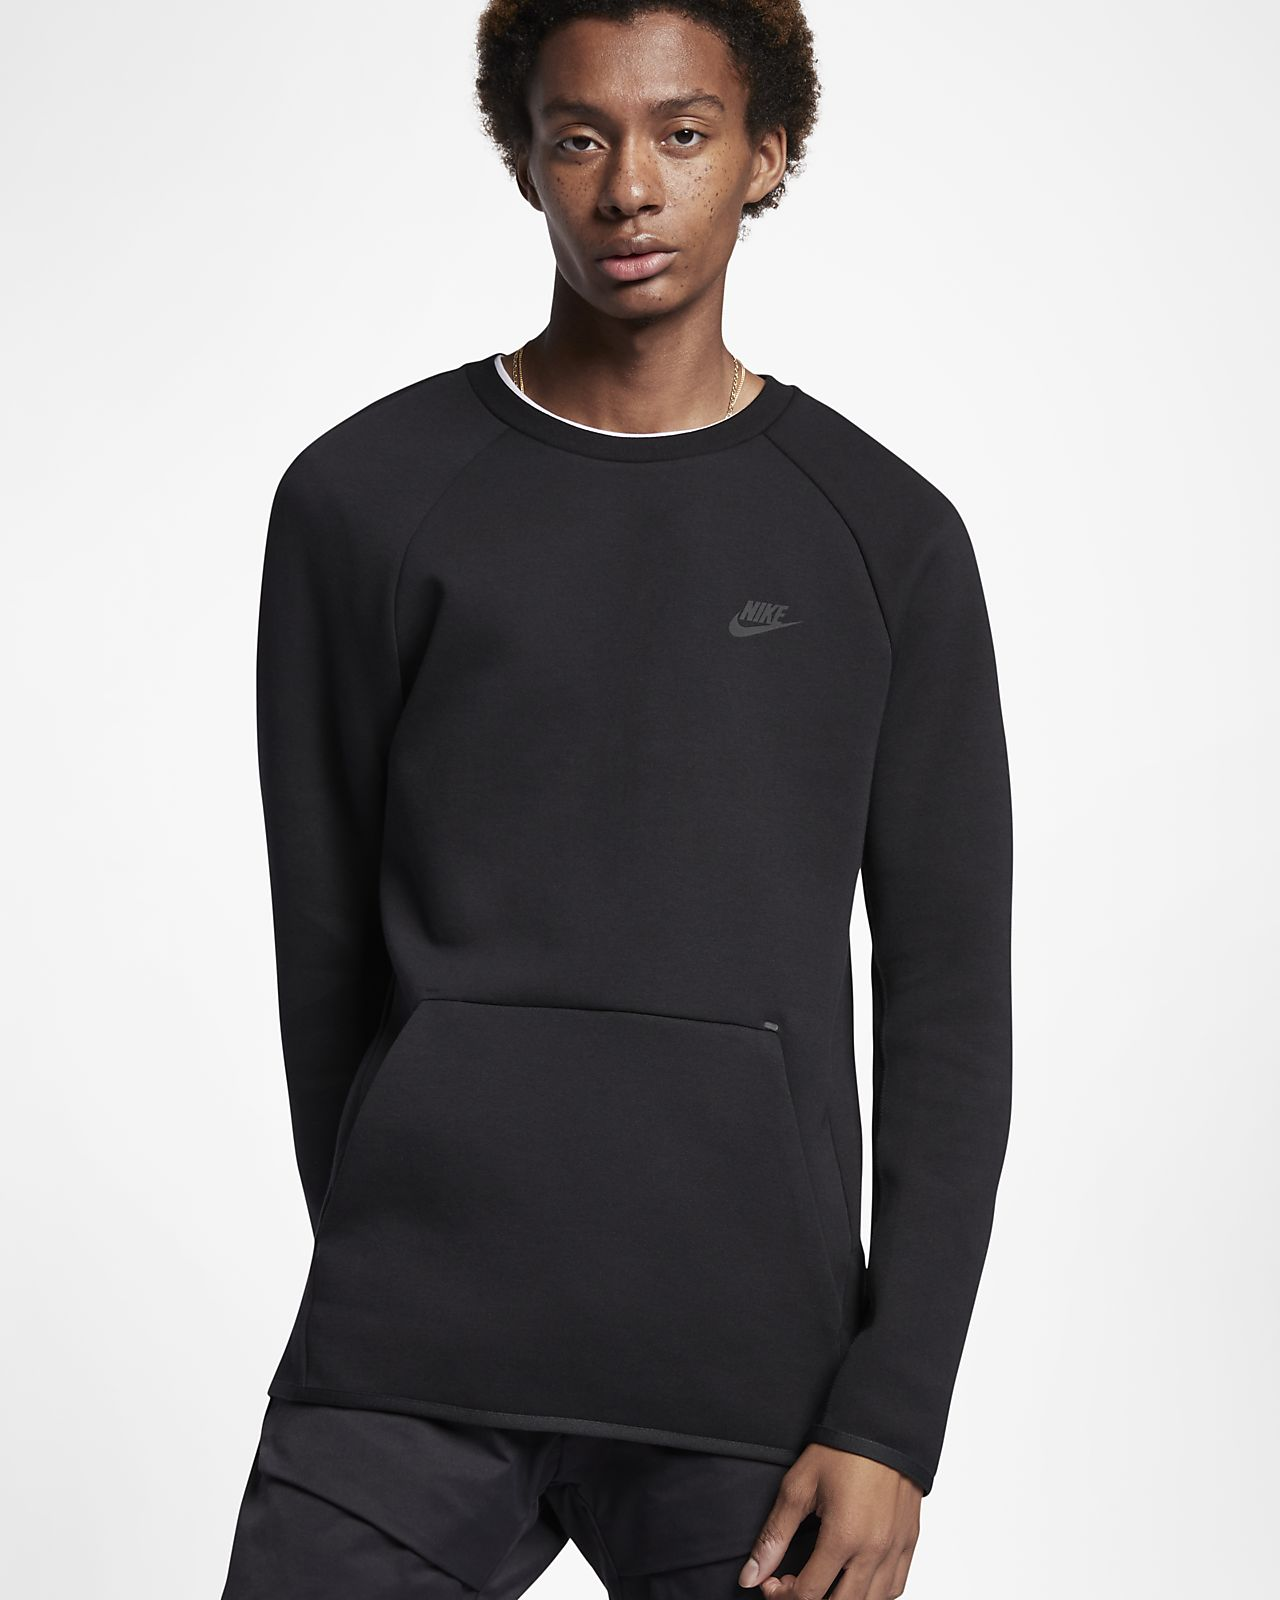 Nike Sportswear Tech Fleece Men's Long-Sleeve Crew